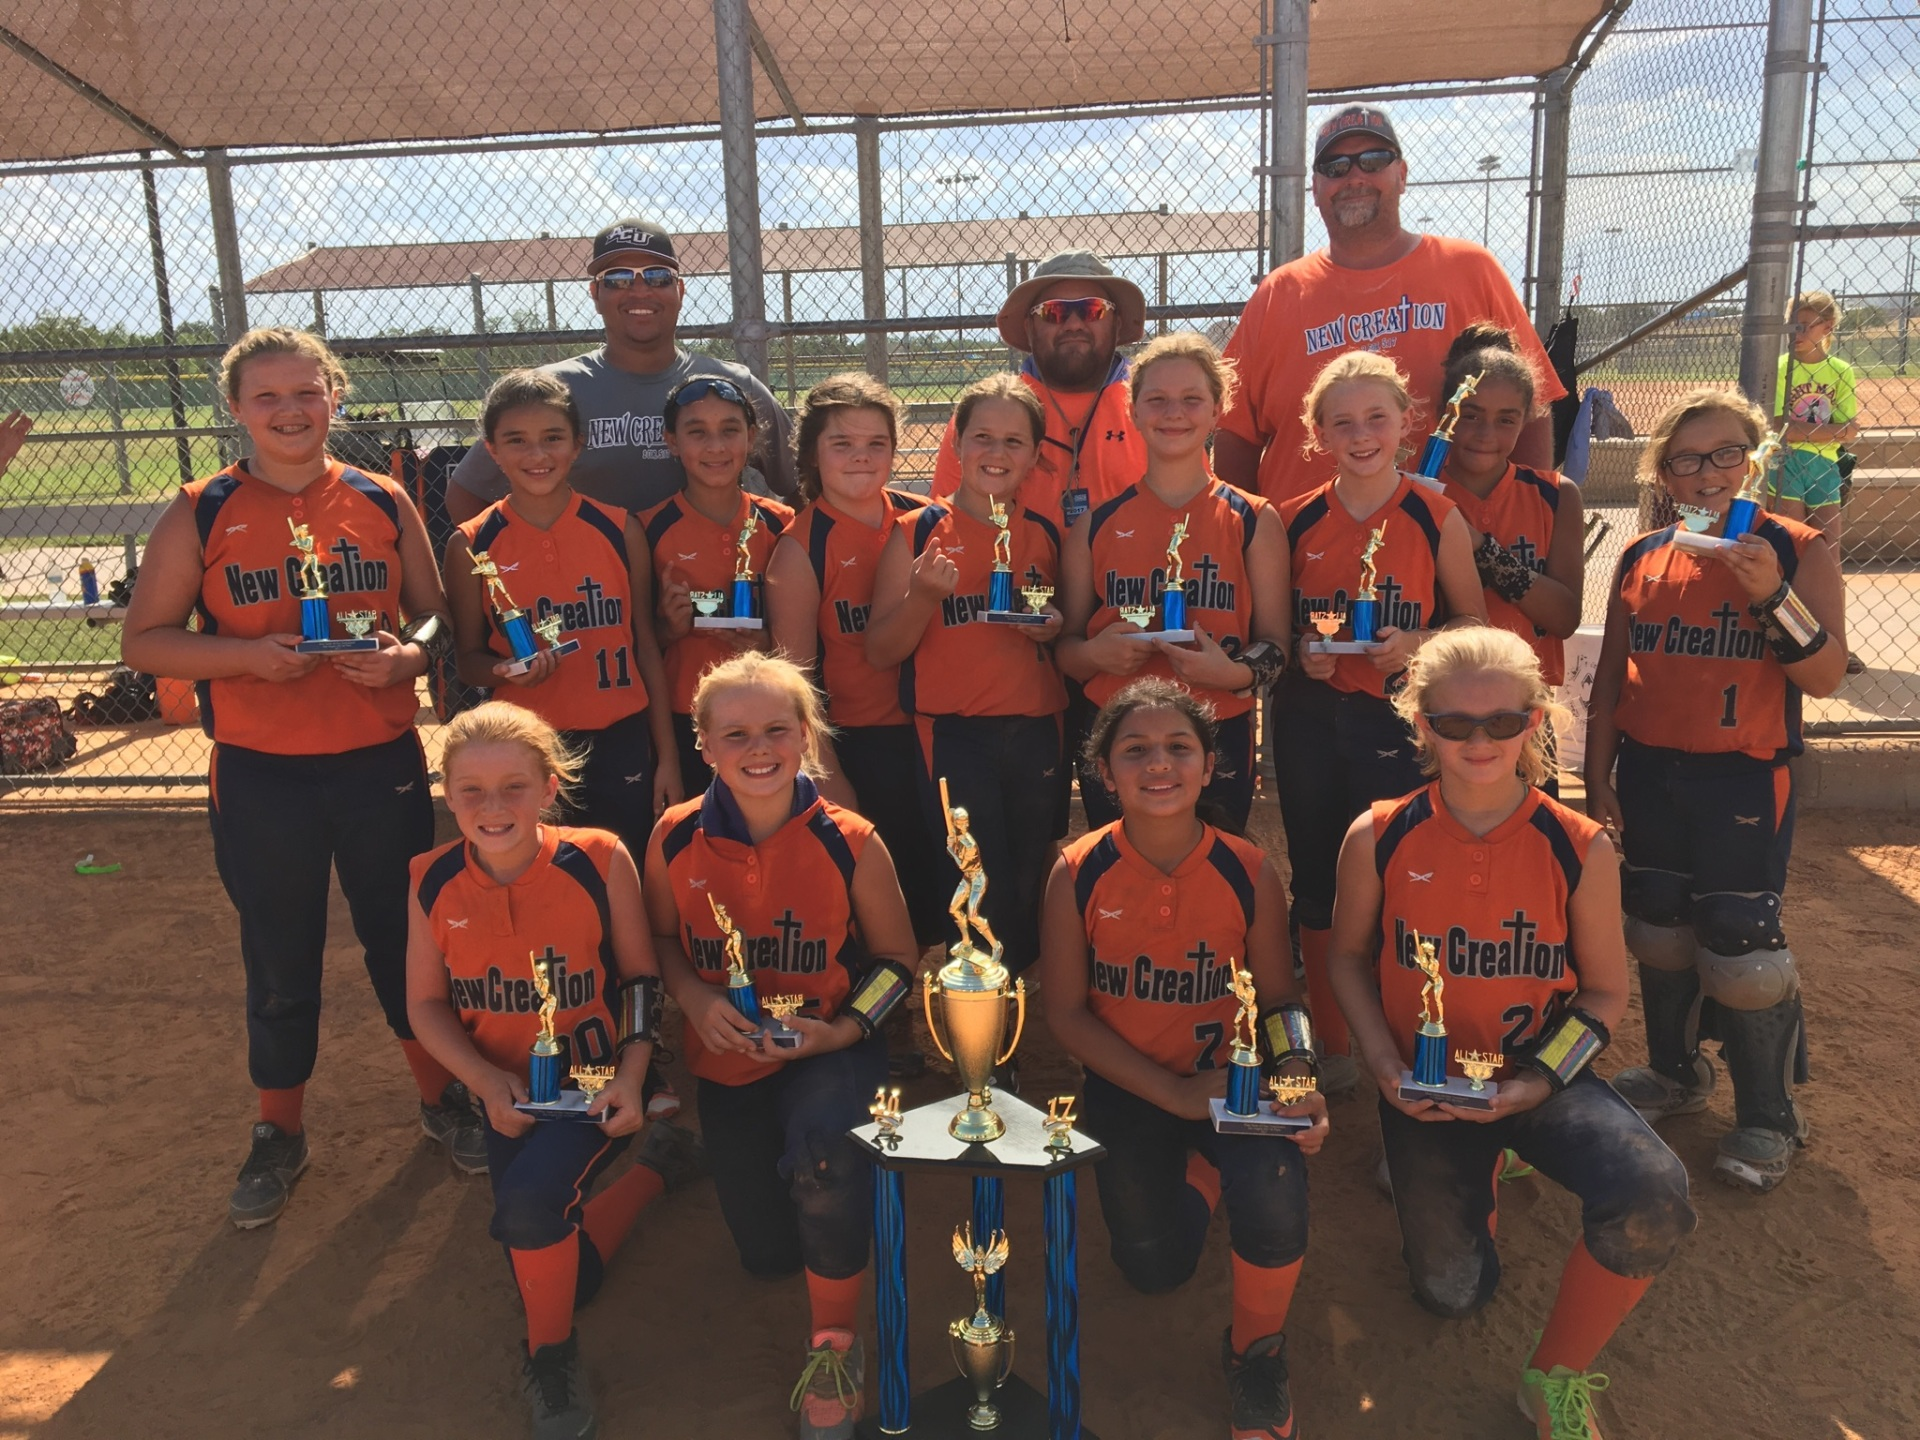 New Creation 1st Place 10U